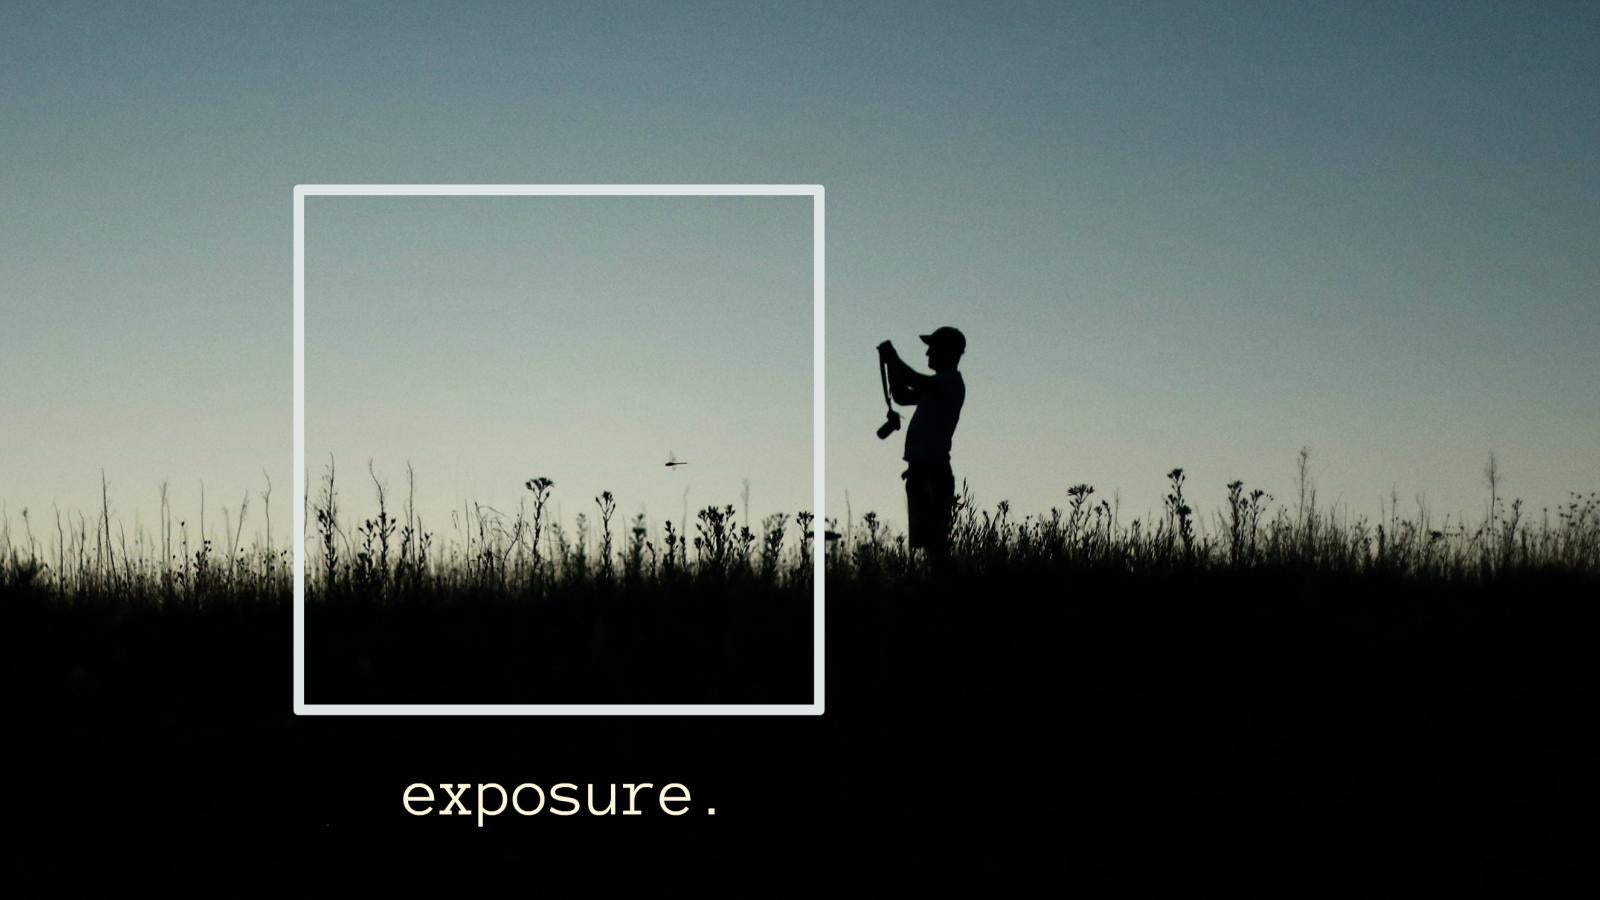 """The silhouette of a photographer stands in a field of tall grass captioned with """"exposure."""""""